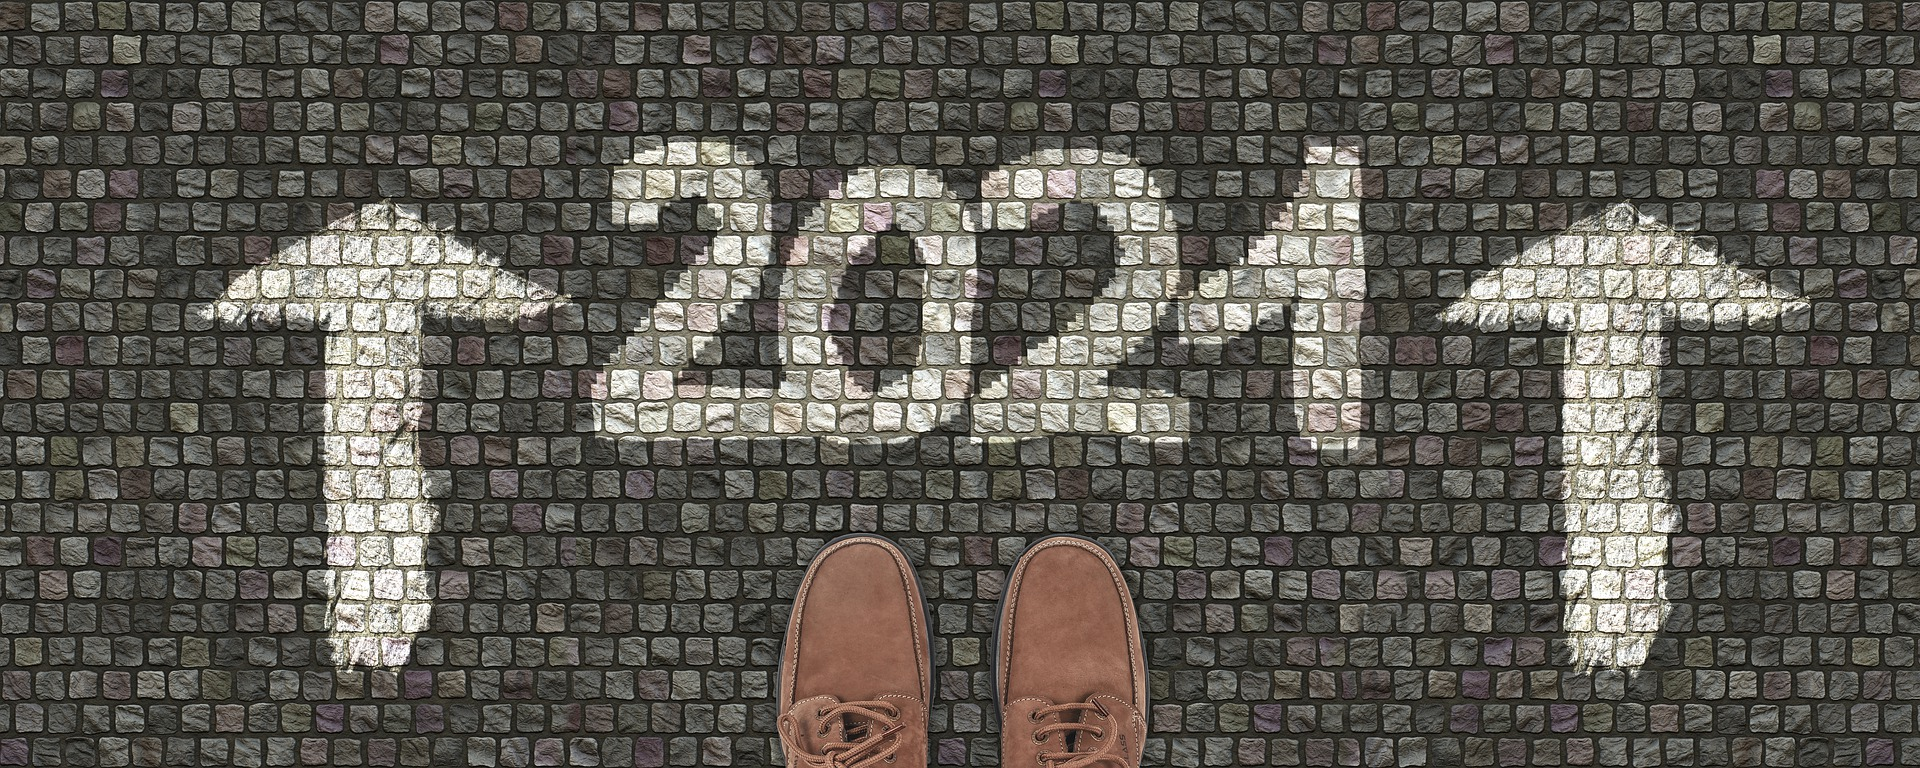 What are the Marketing Trends for 2021 that I need to Plan for Now?